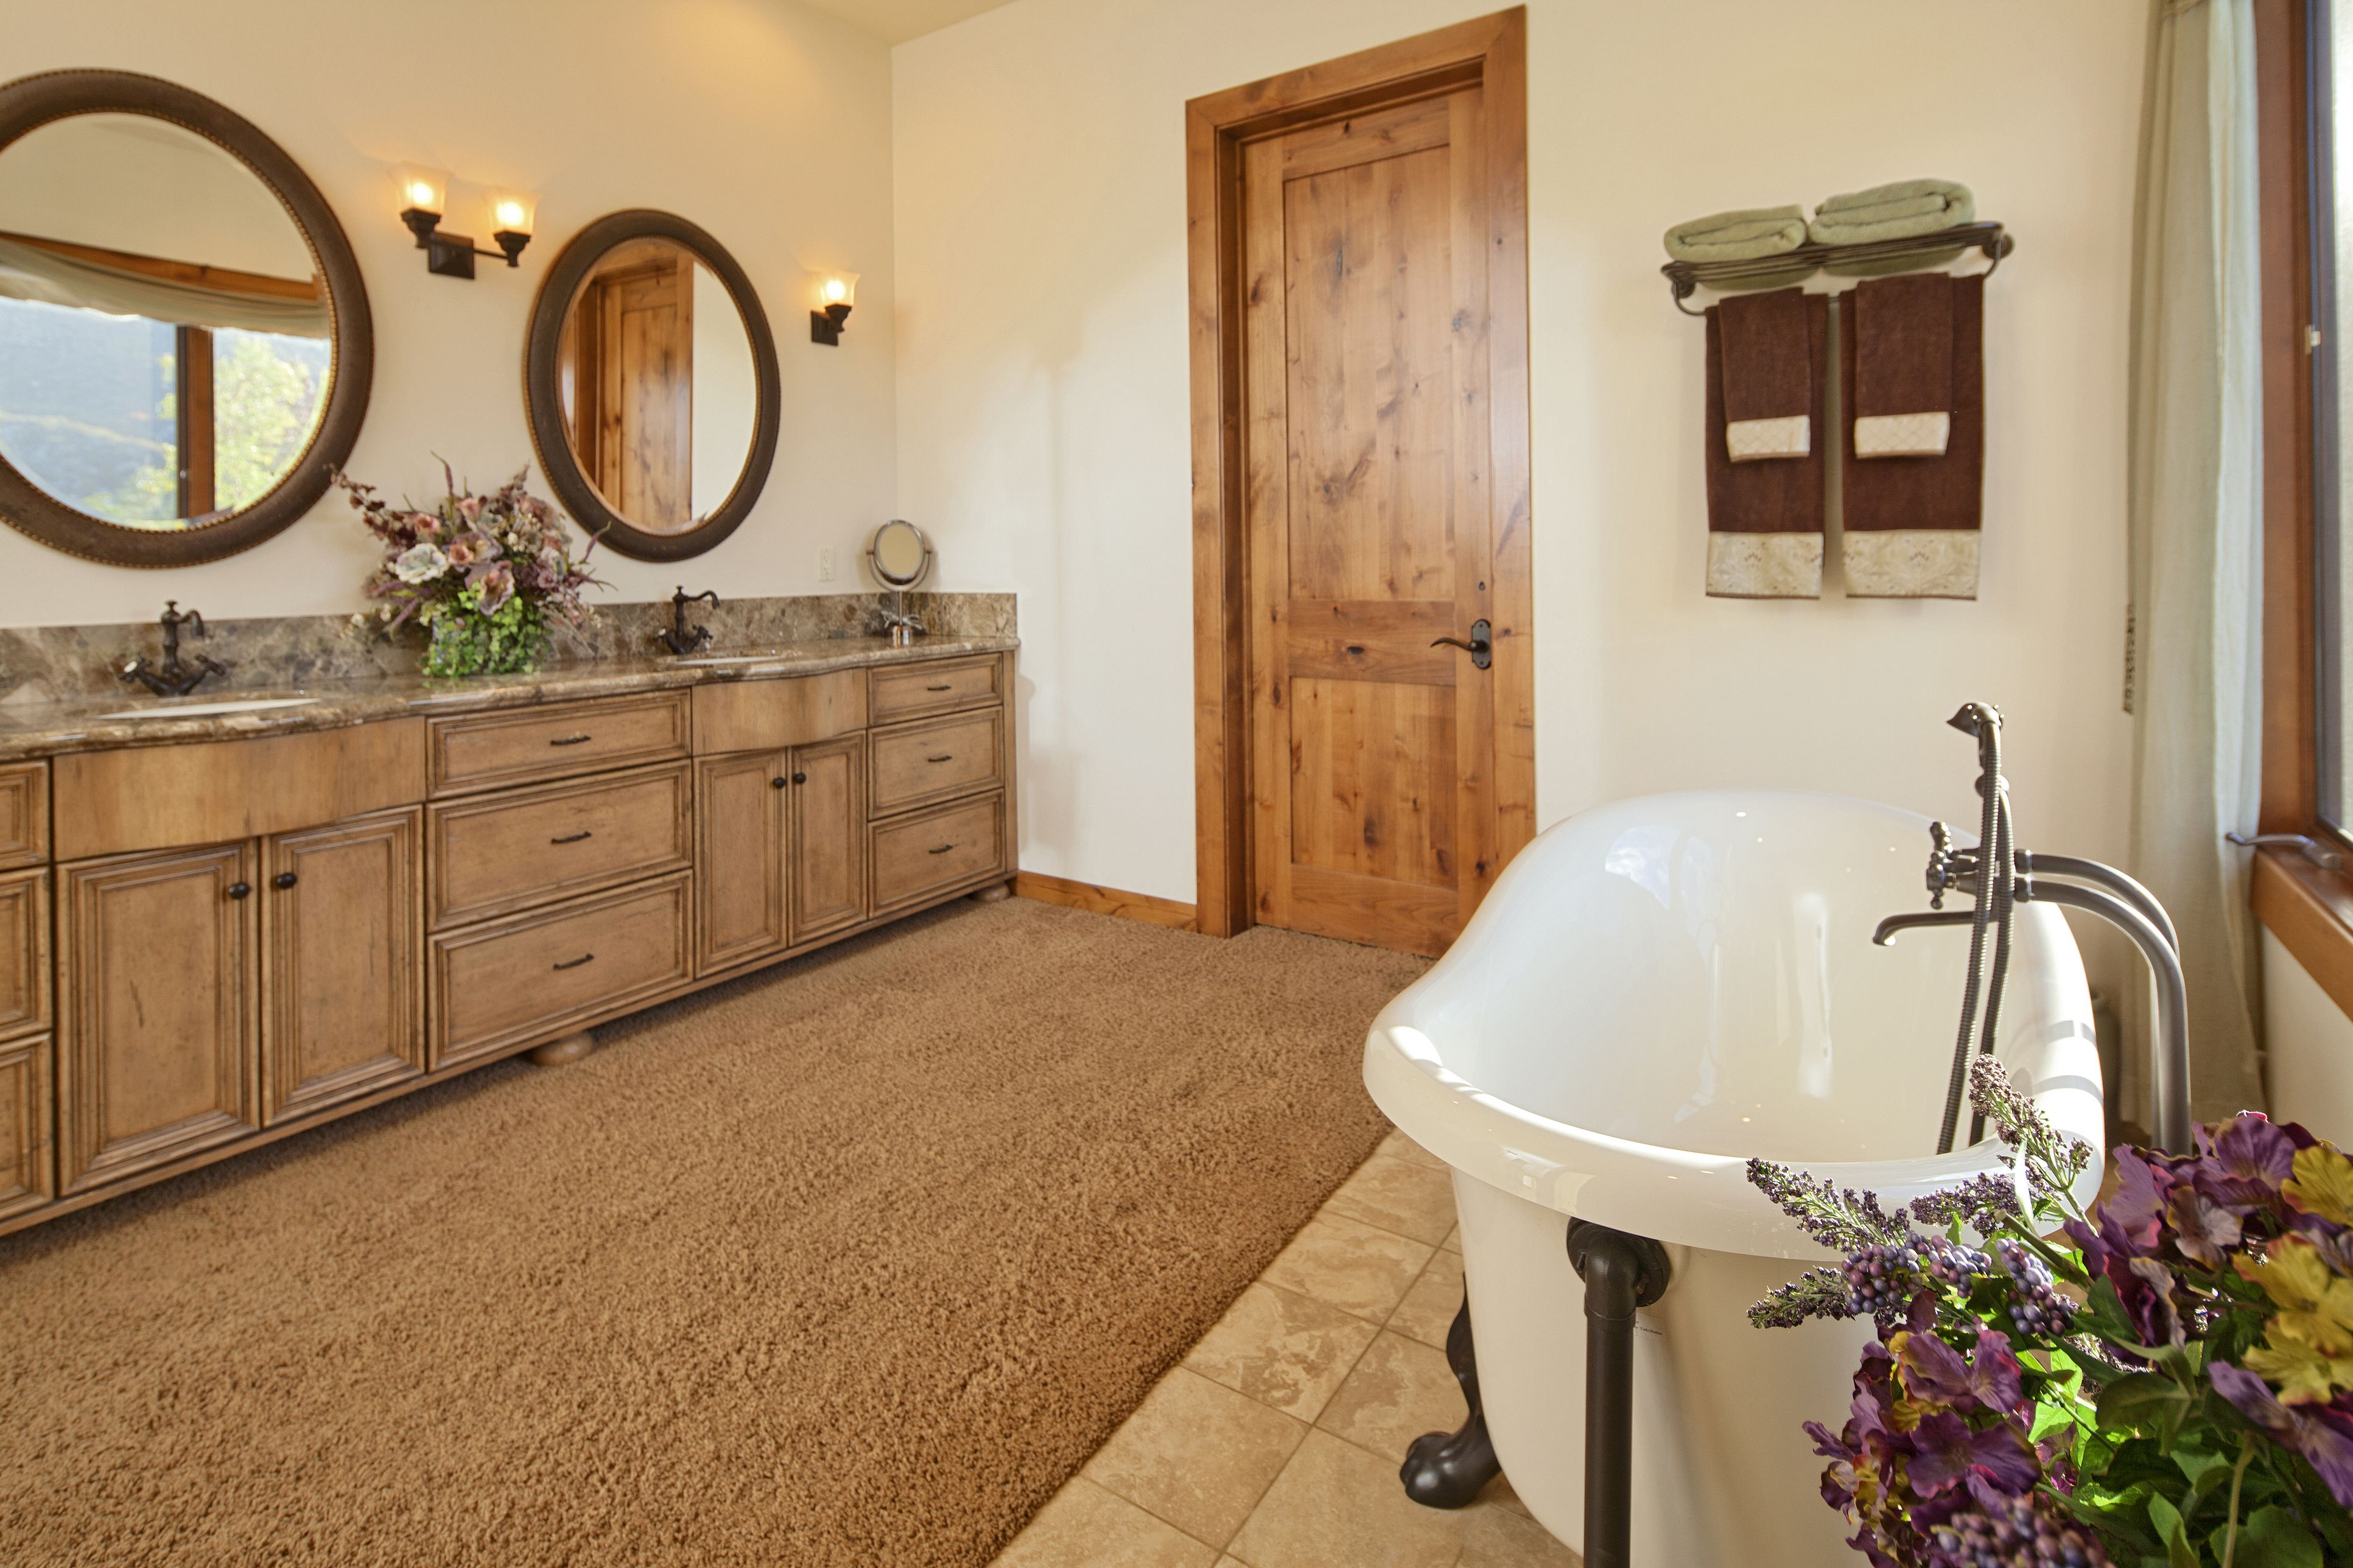 How To Make Carpet In The Bathroom Work